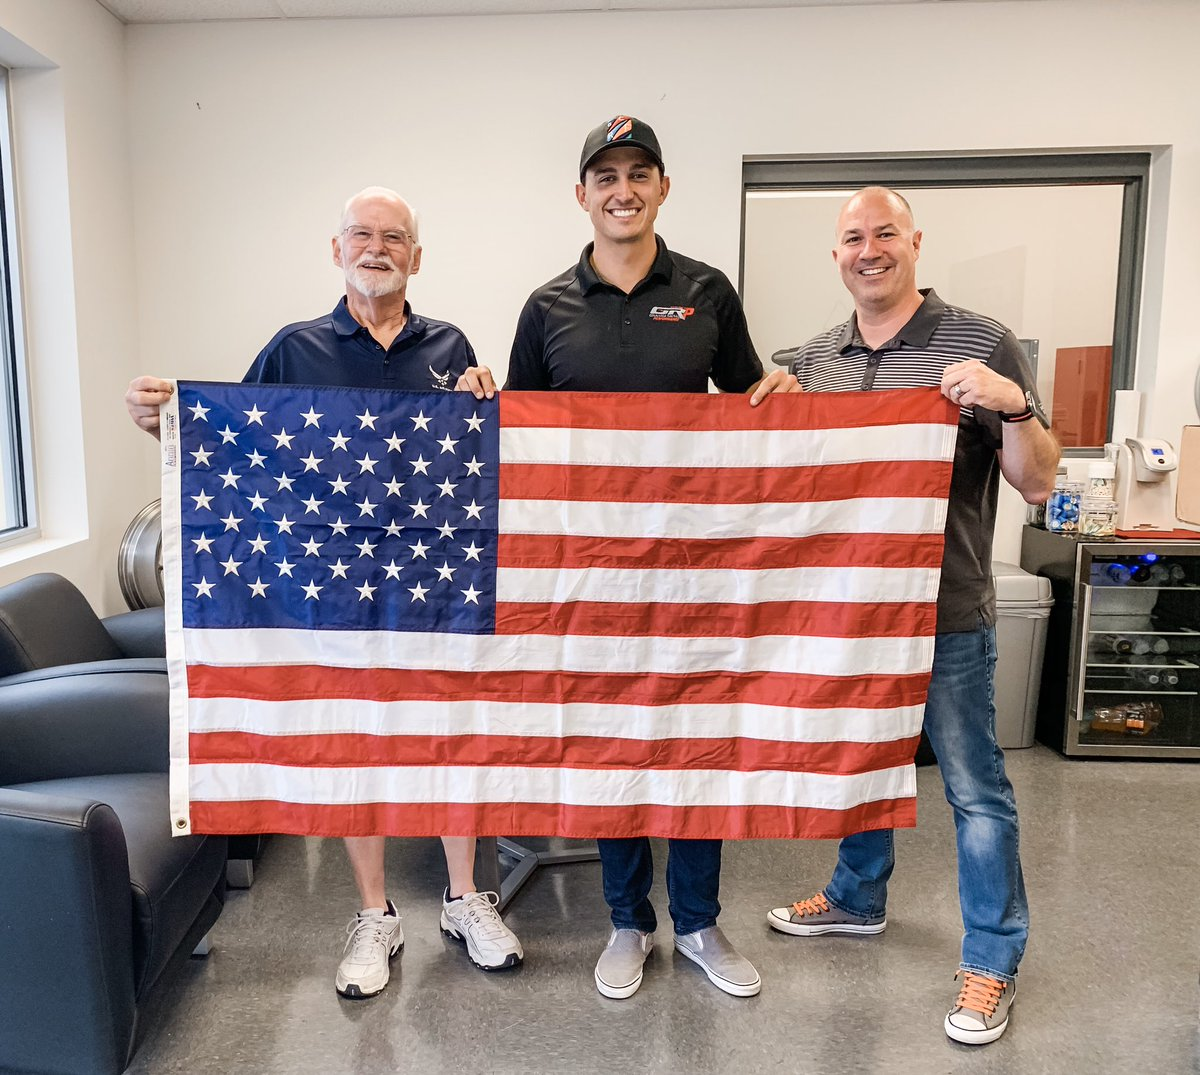 Today I was honored to meet Lt. Col. Randall Hood who presented me with this beautiful American flag that recently flew on a special mission. This year on the 75th anniversary of D-Day, Randall flew 1 of 17 C130's over Normandy, dropping 1,000 Paratroopers to honor those fallen.